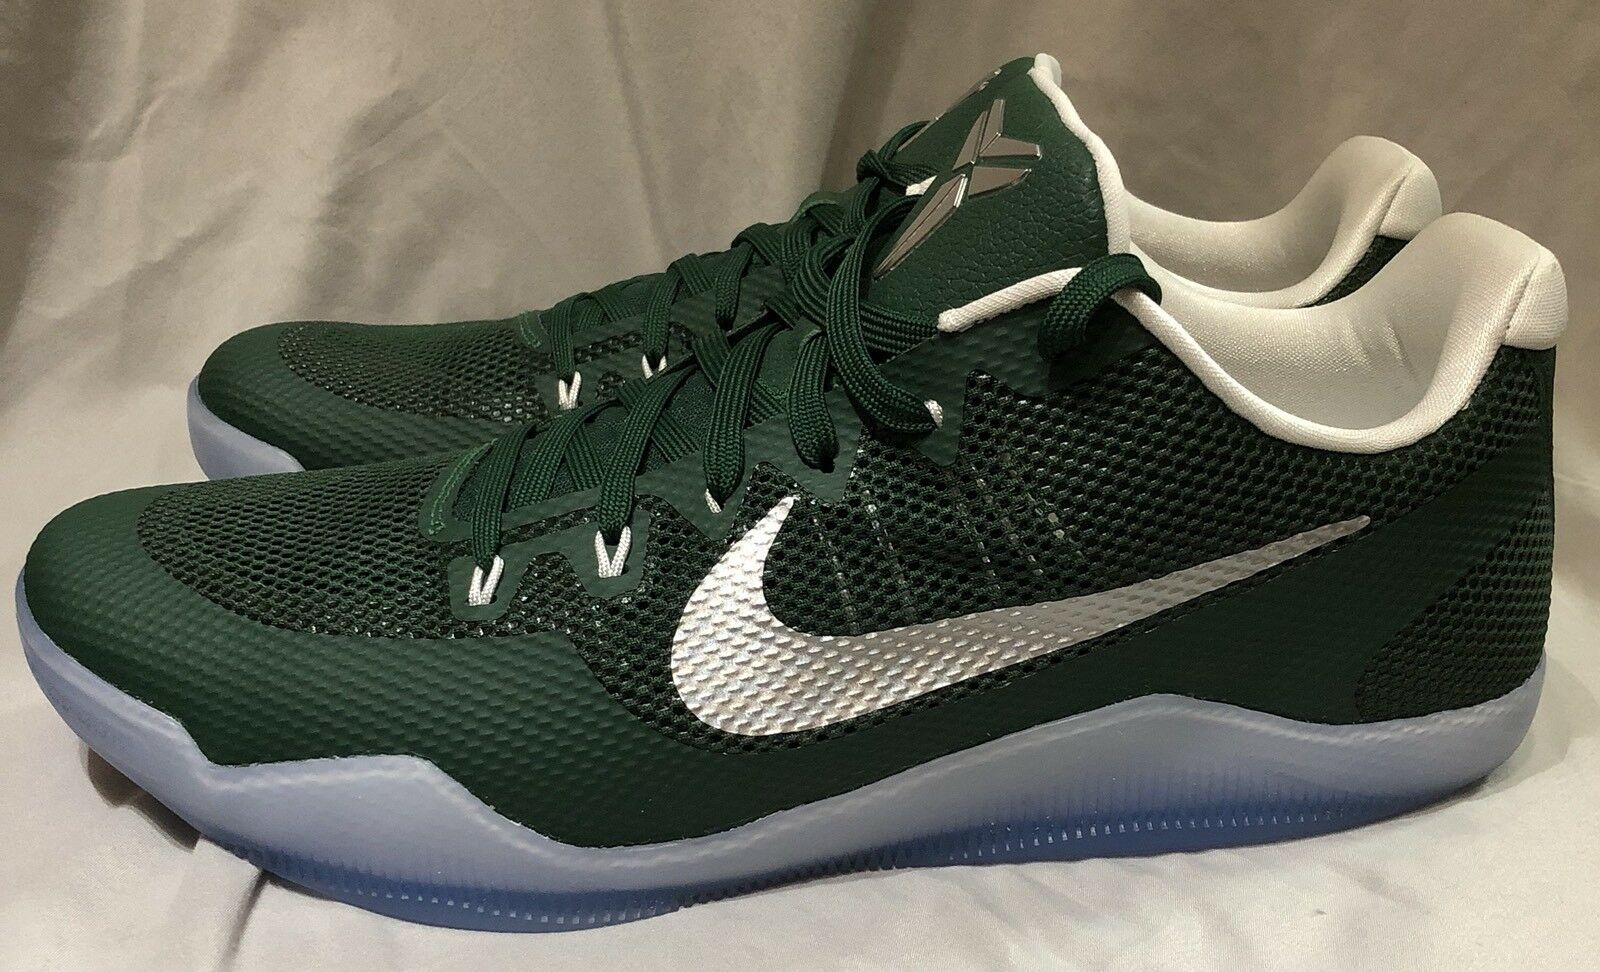 Nike Kobe XI 11 TB Promo Gorge Green Basketball shoes Size 14.5 856485-331